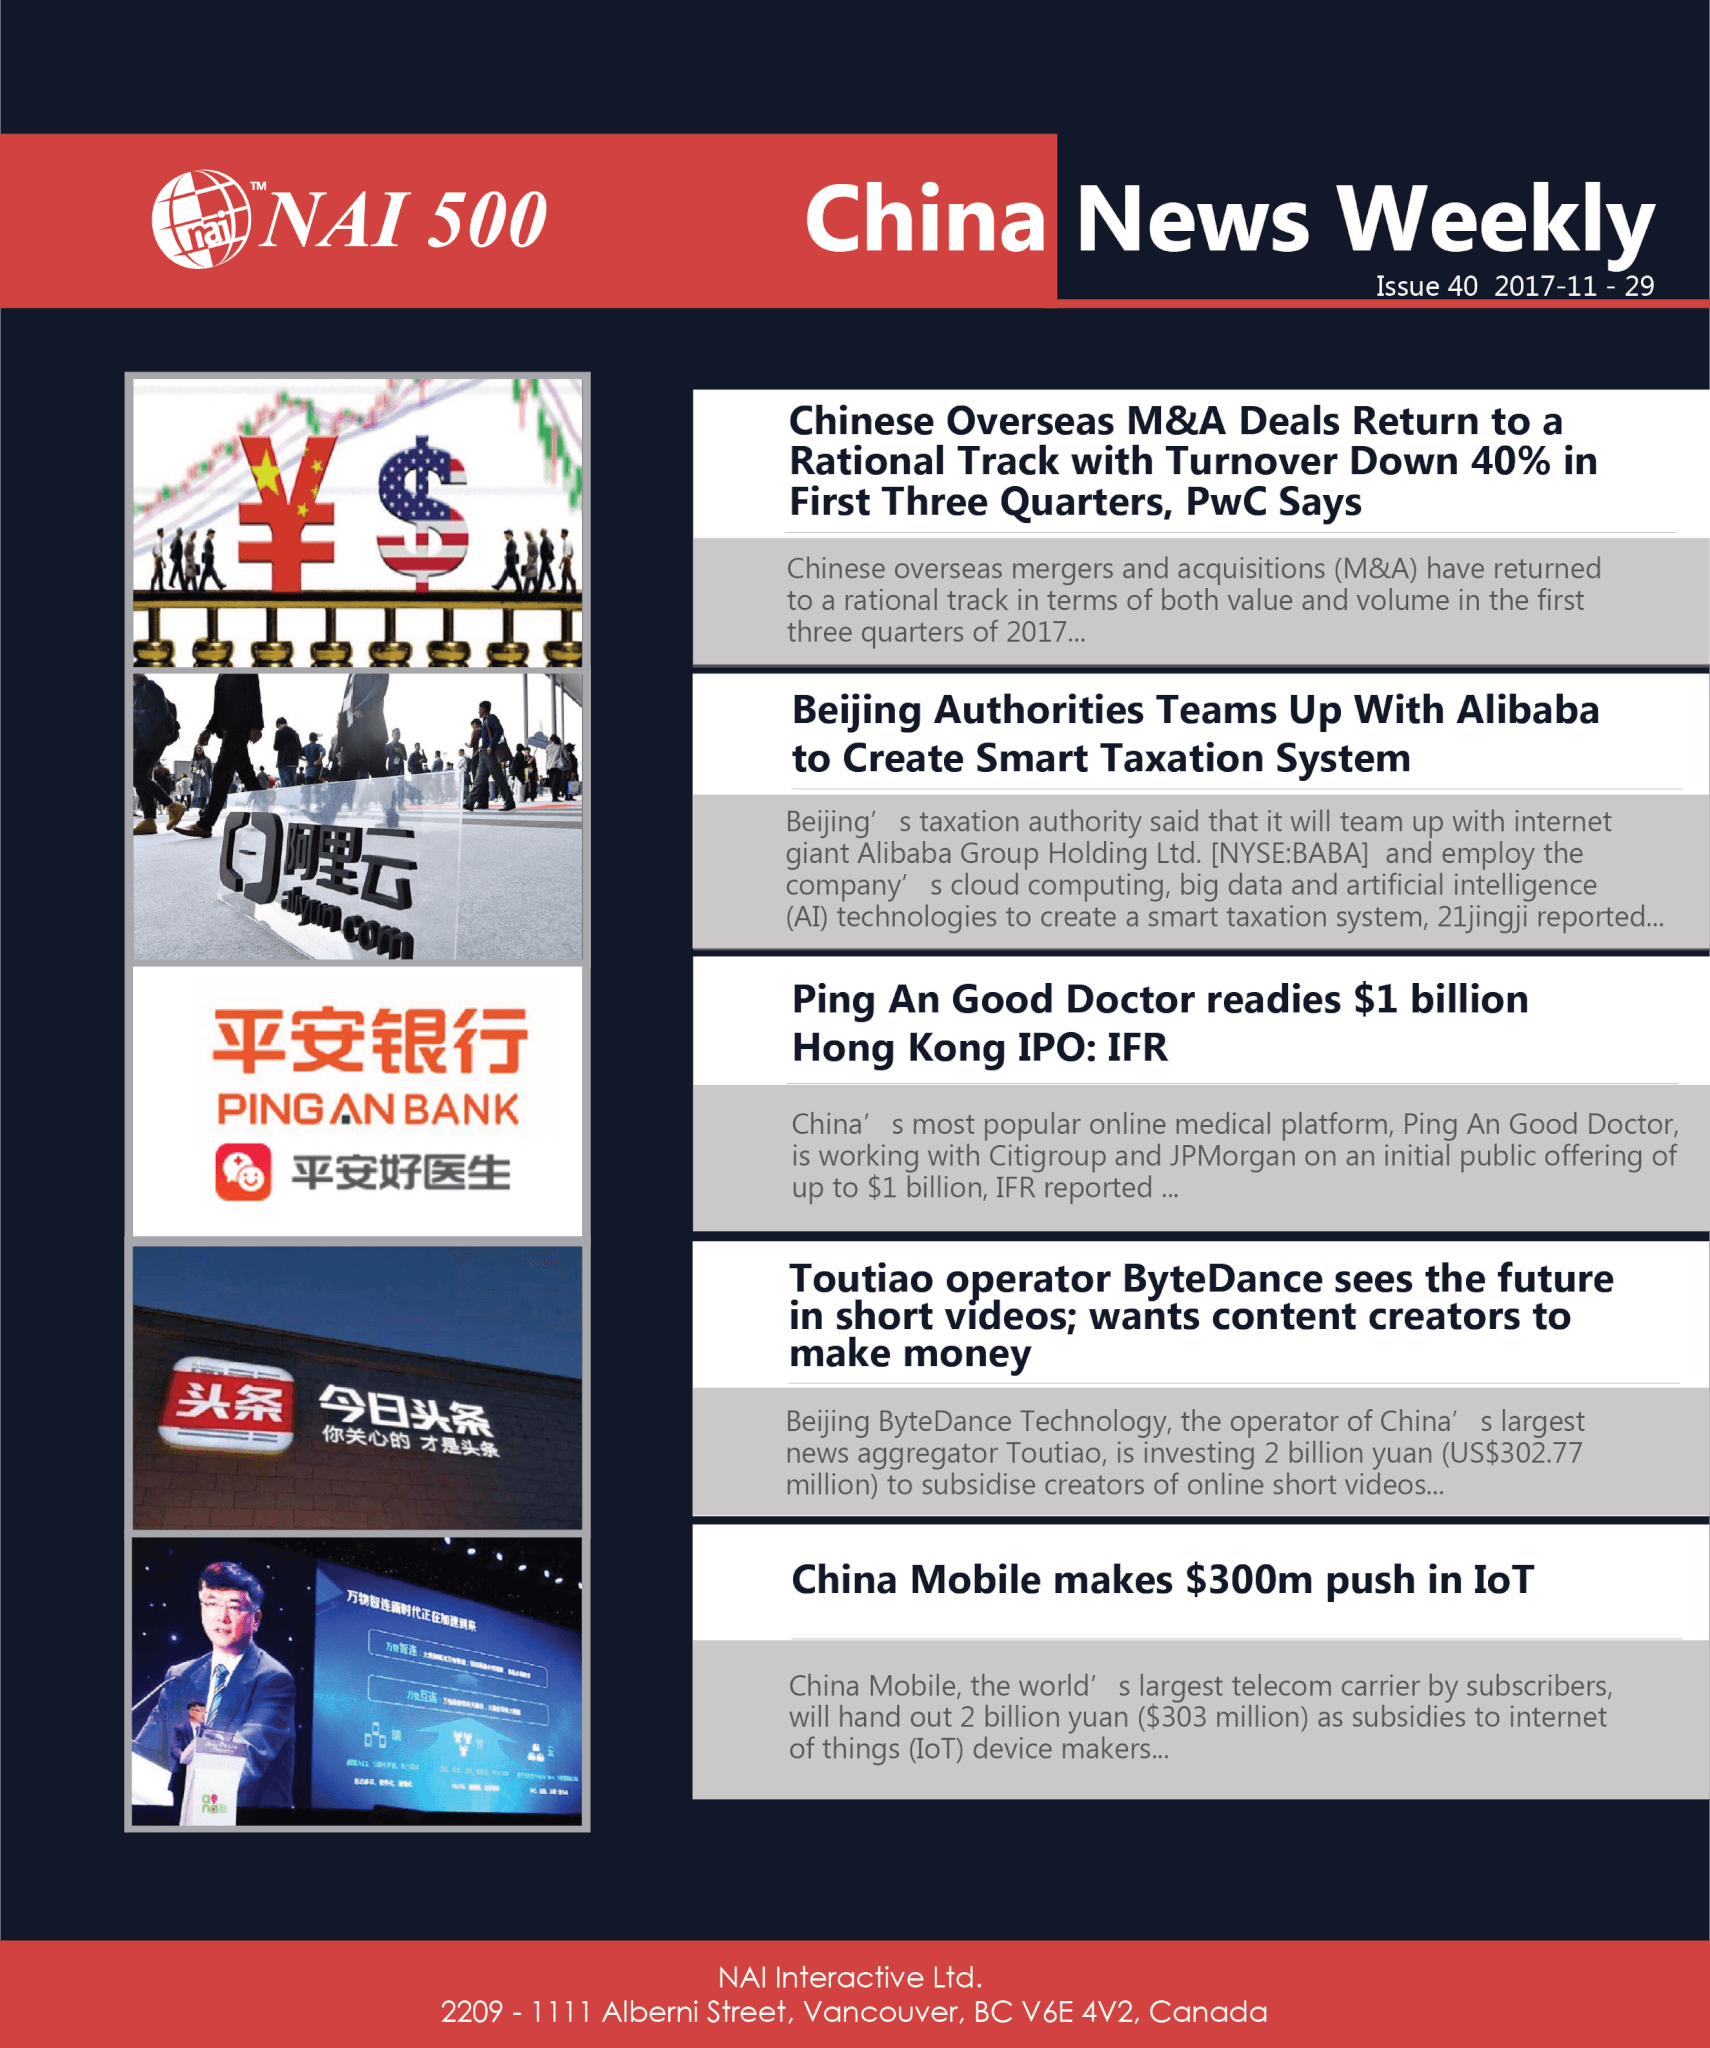 China News Weekly 40 -Chinese Overseas M&A Deals Return to a